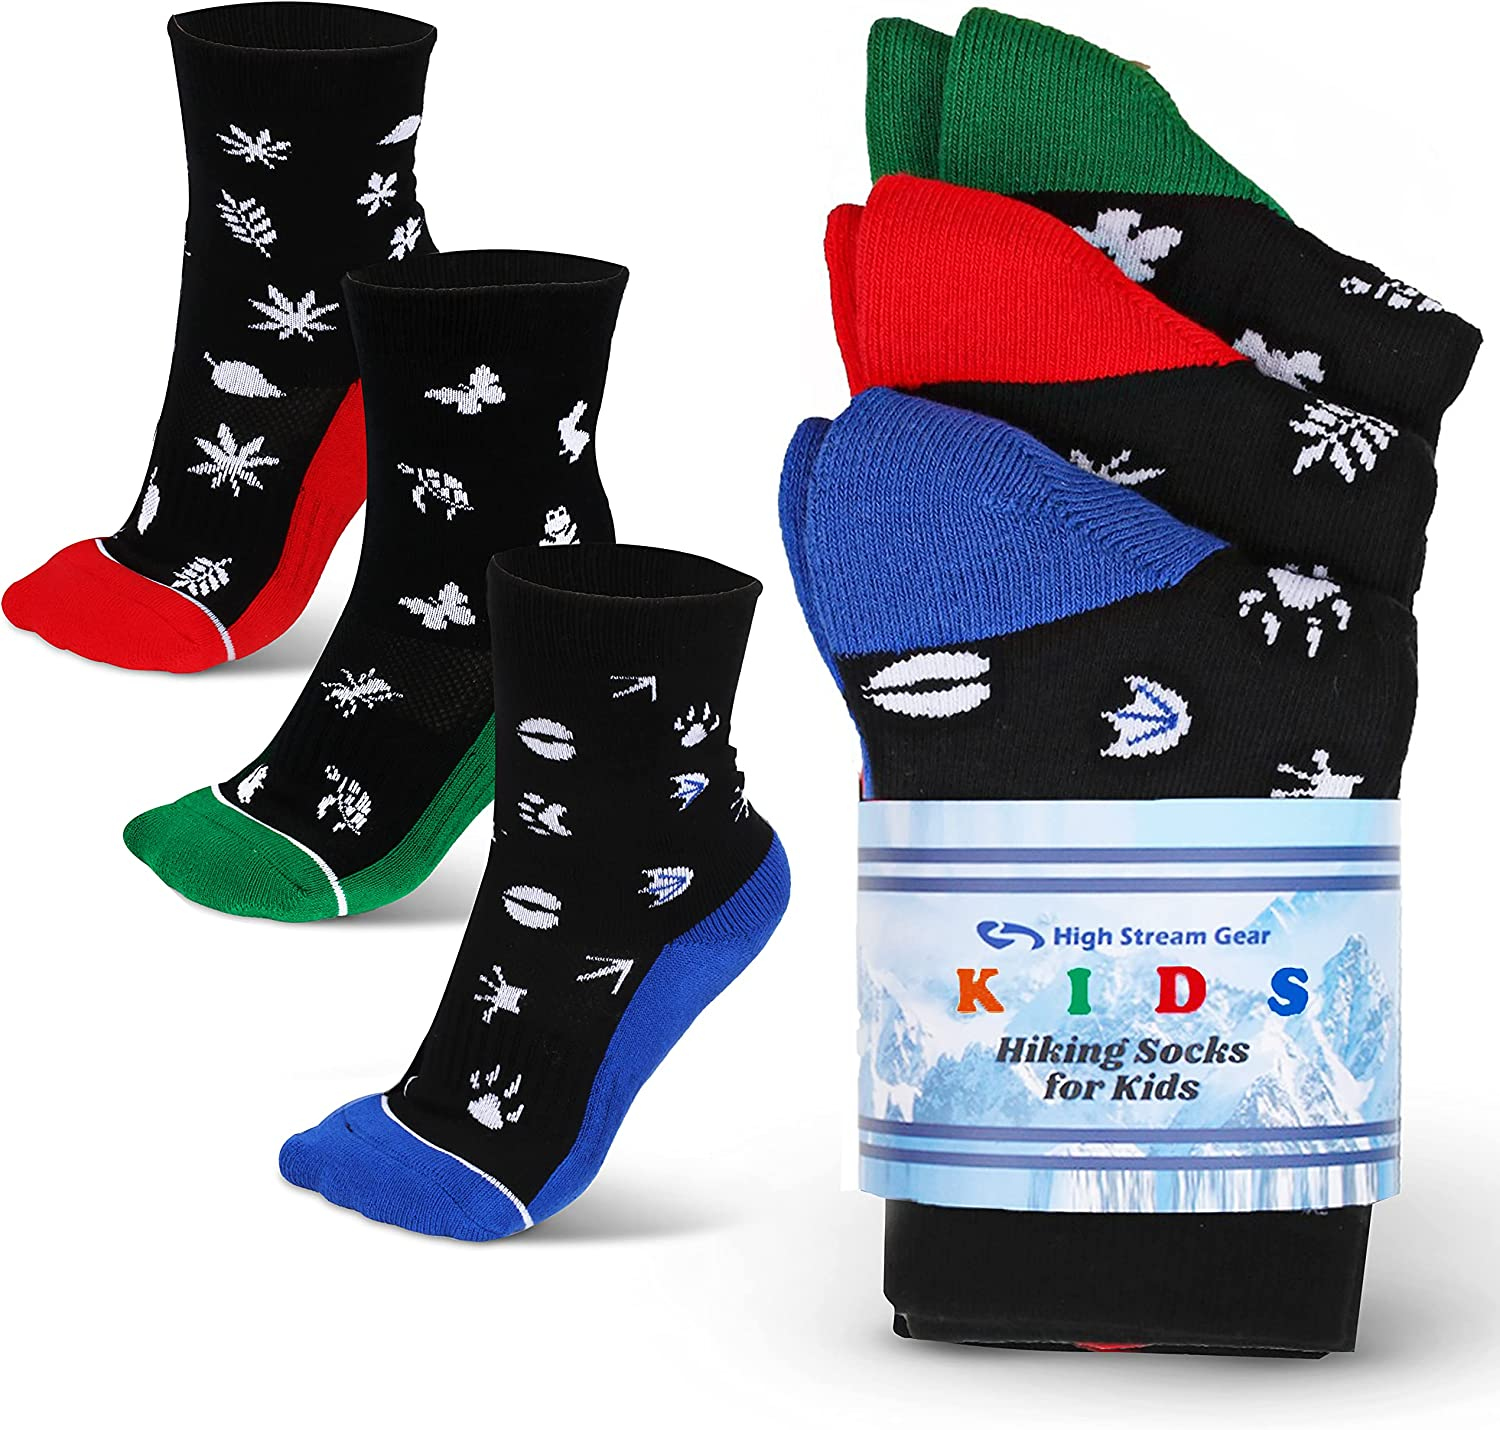 Hiking Socks for Kids-3 Pack of Cushioned Socks for Trekking, Sports and Camping